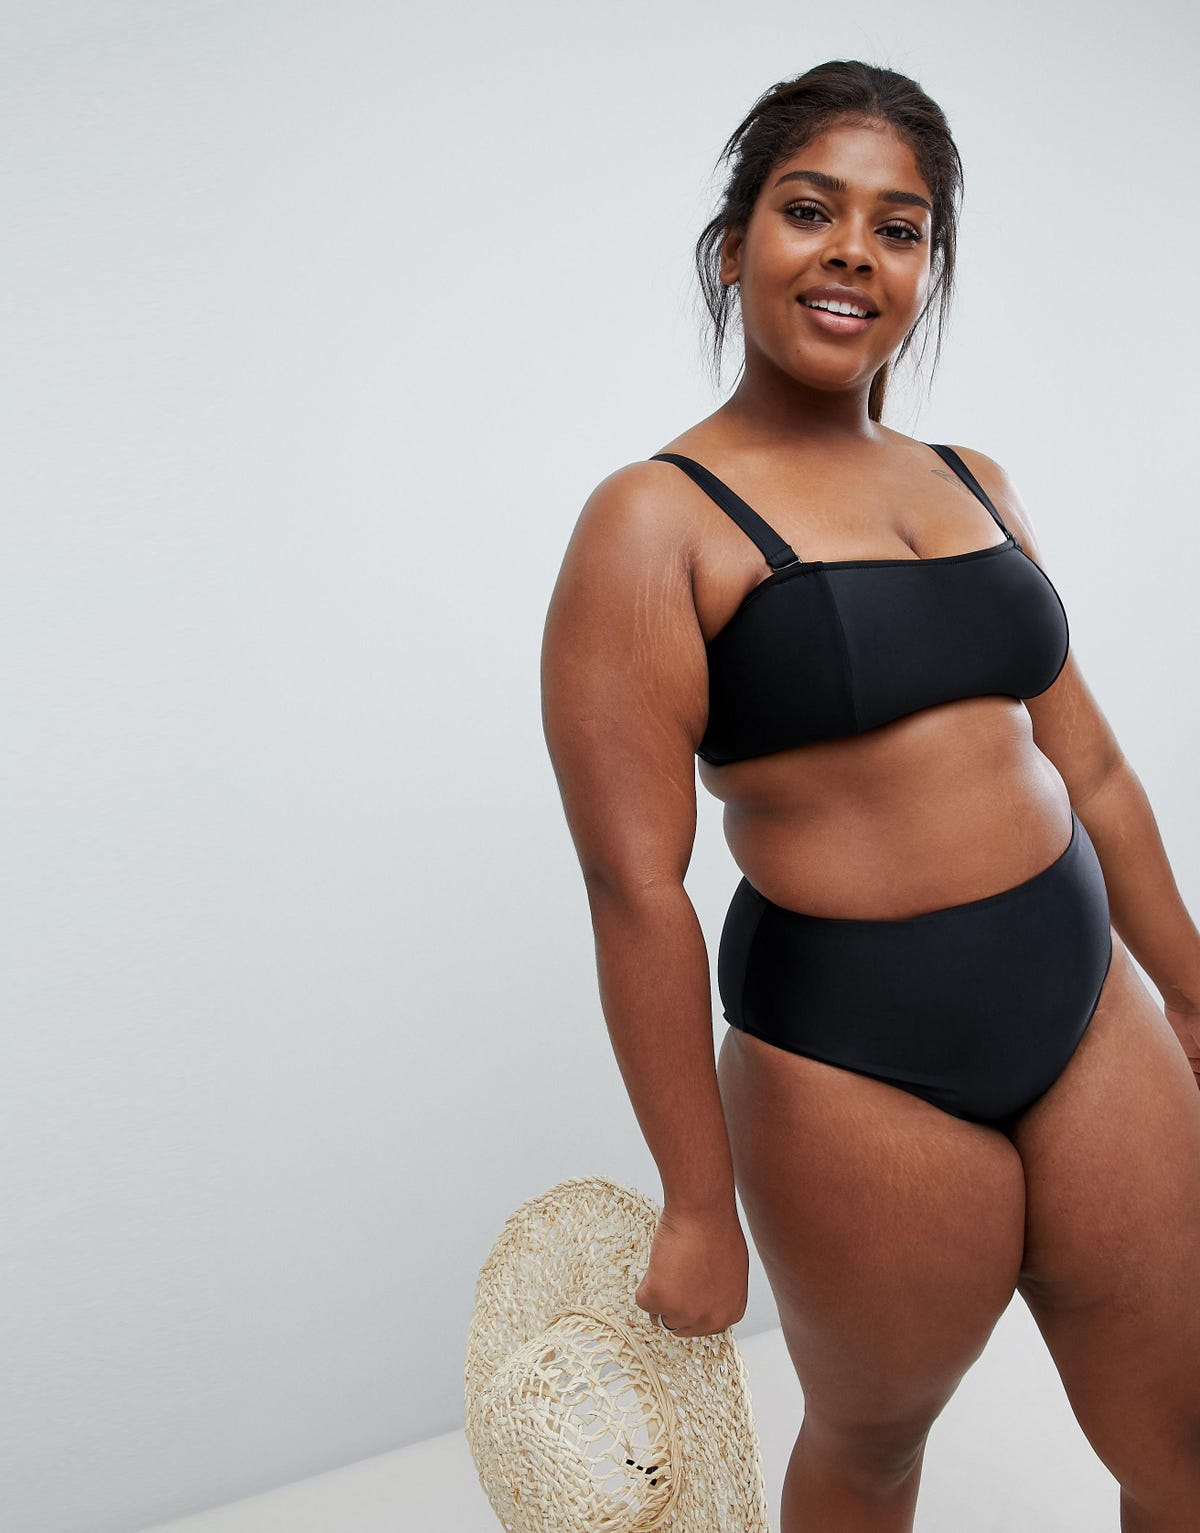 Supportive Bikinis & Swimsuits For Women With Big Busts